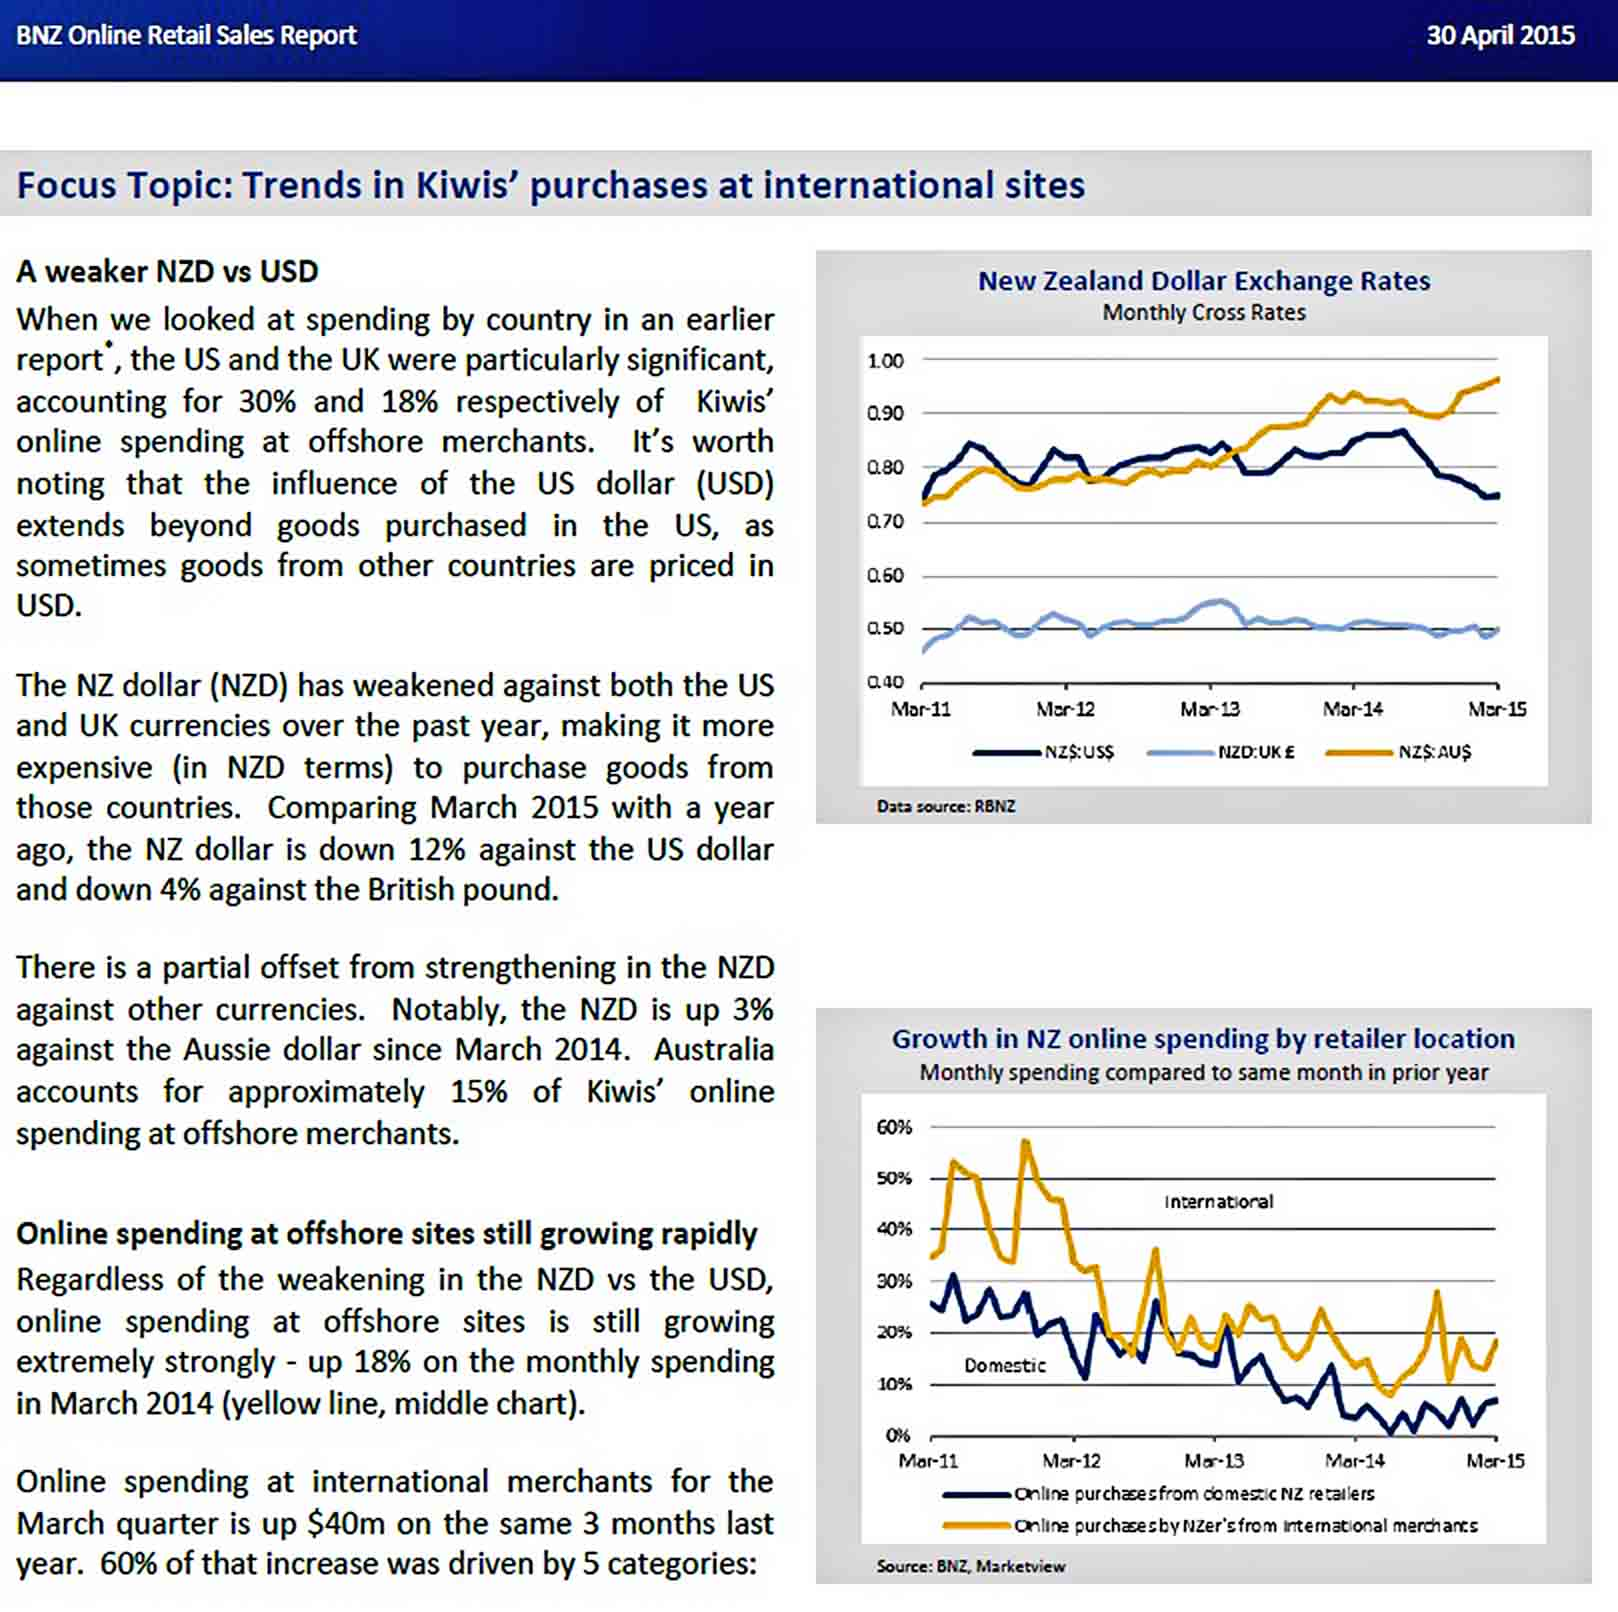 Templates Retail Sales Report in